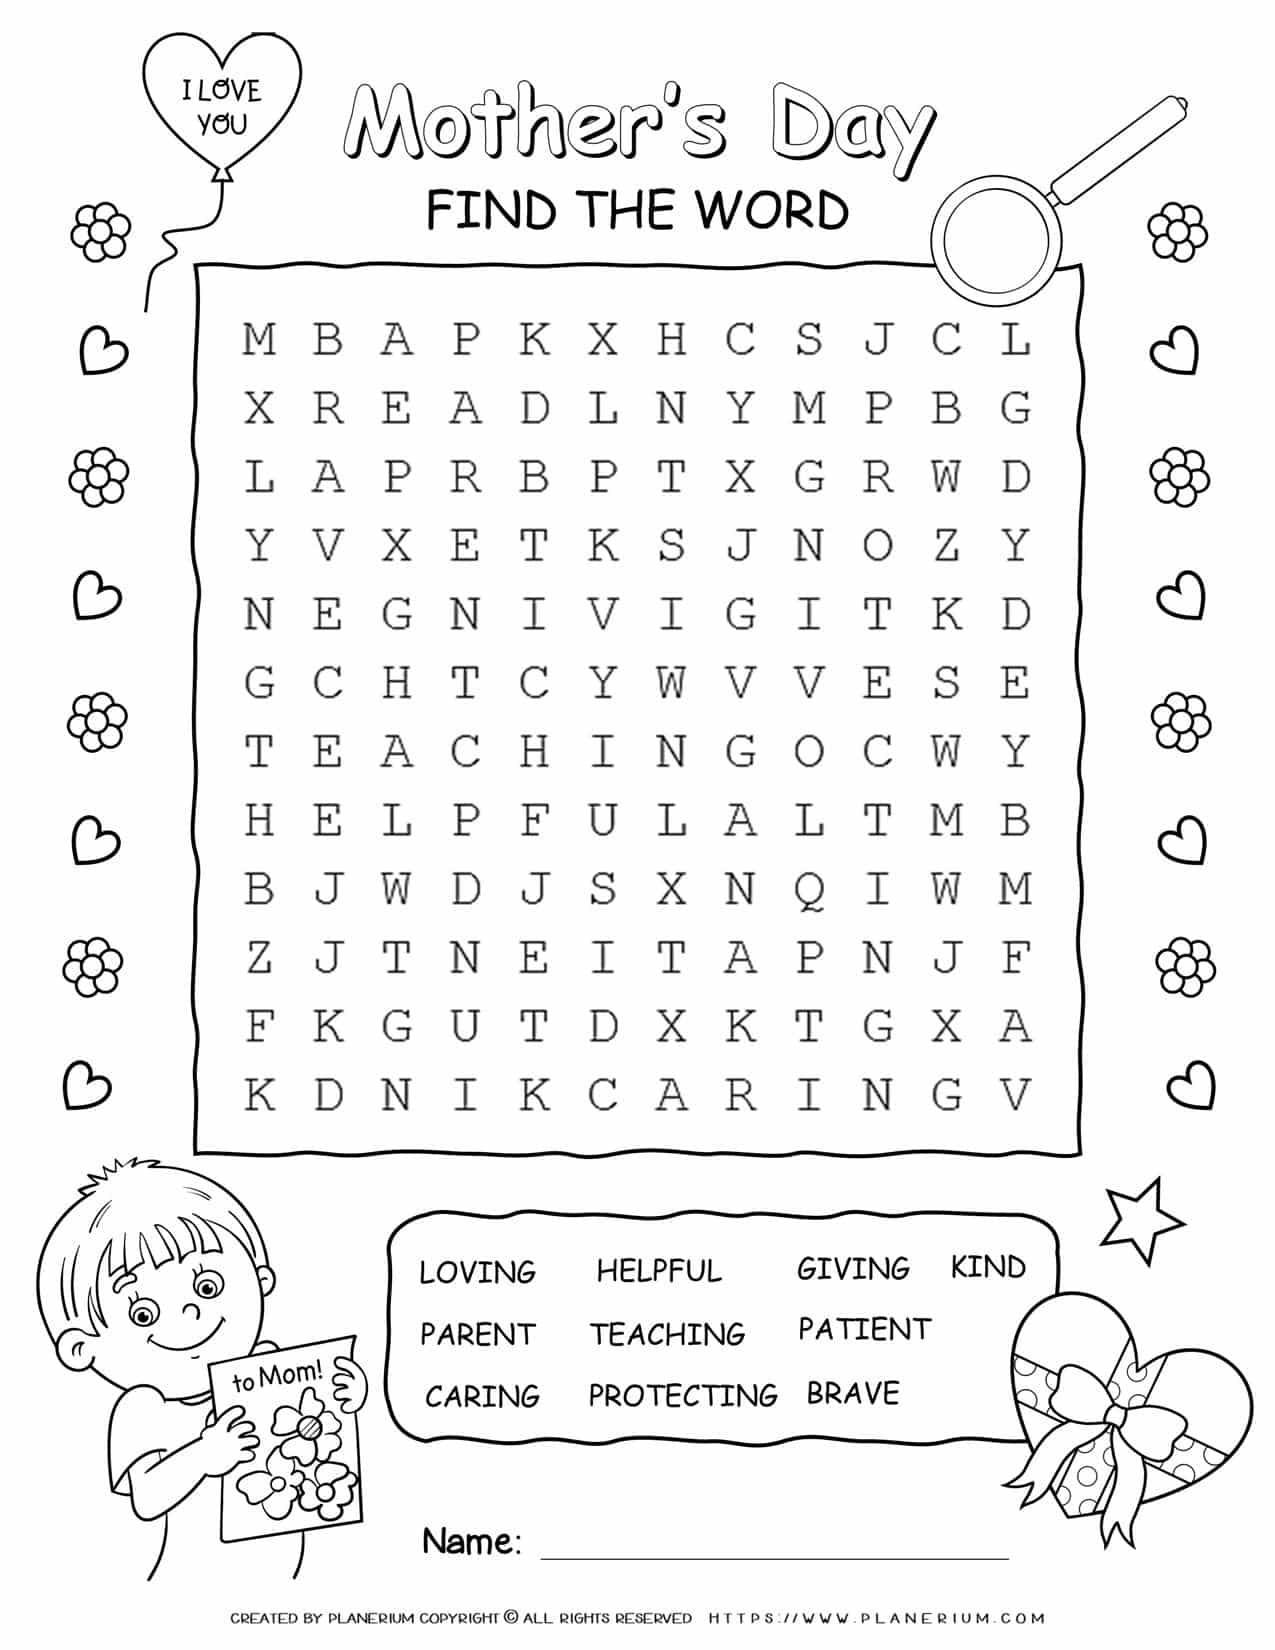 Mother's Day - Word Search Puzzle | Planerium